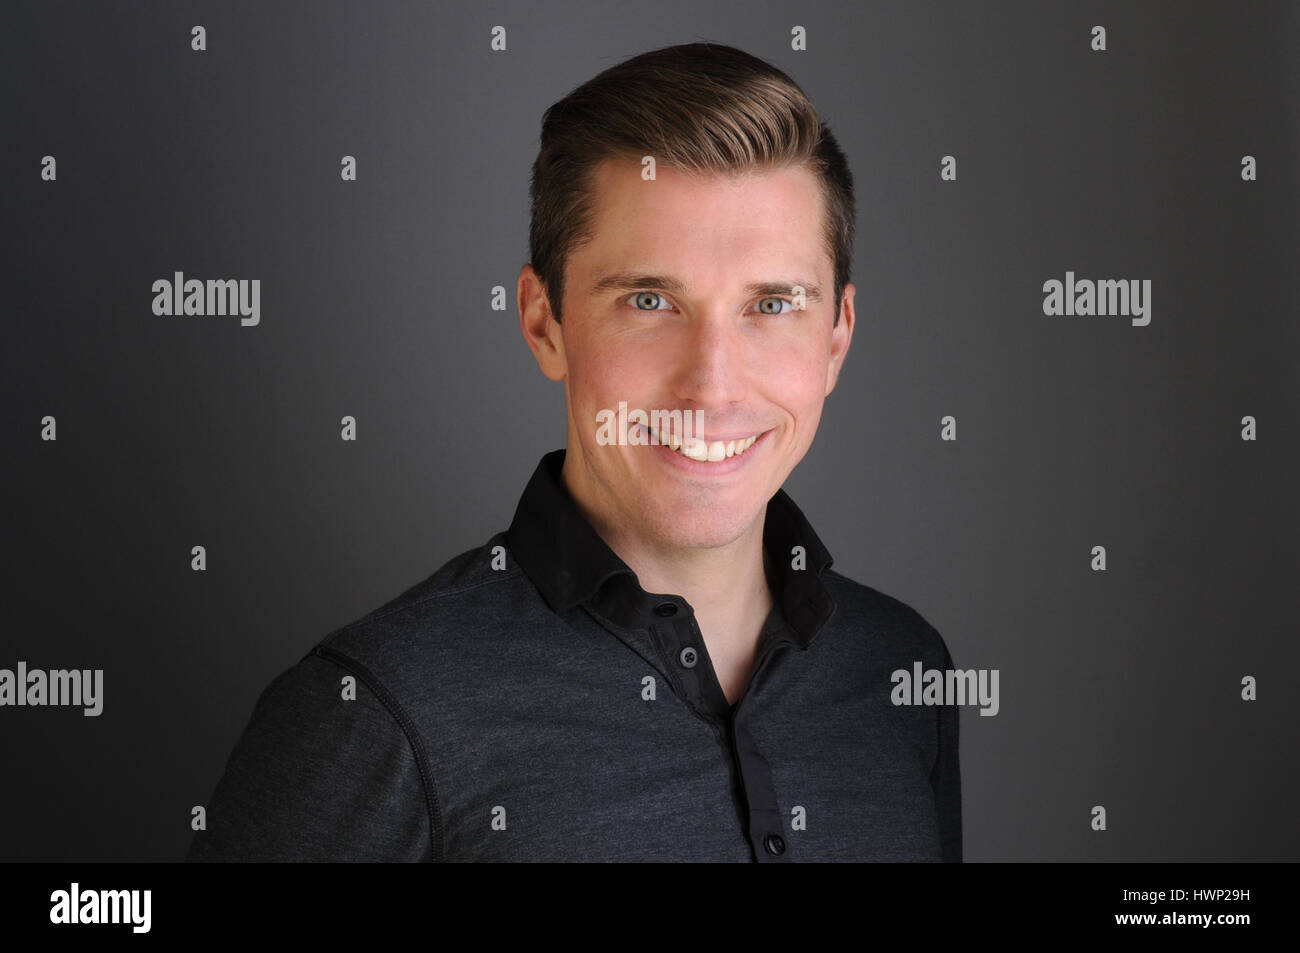 Homme heureux souriant pour appareil photo en vêtements intelligents Photo Stock